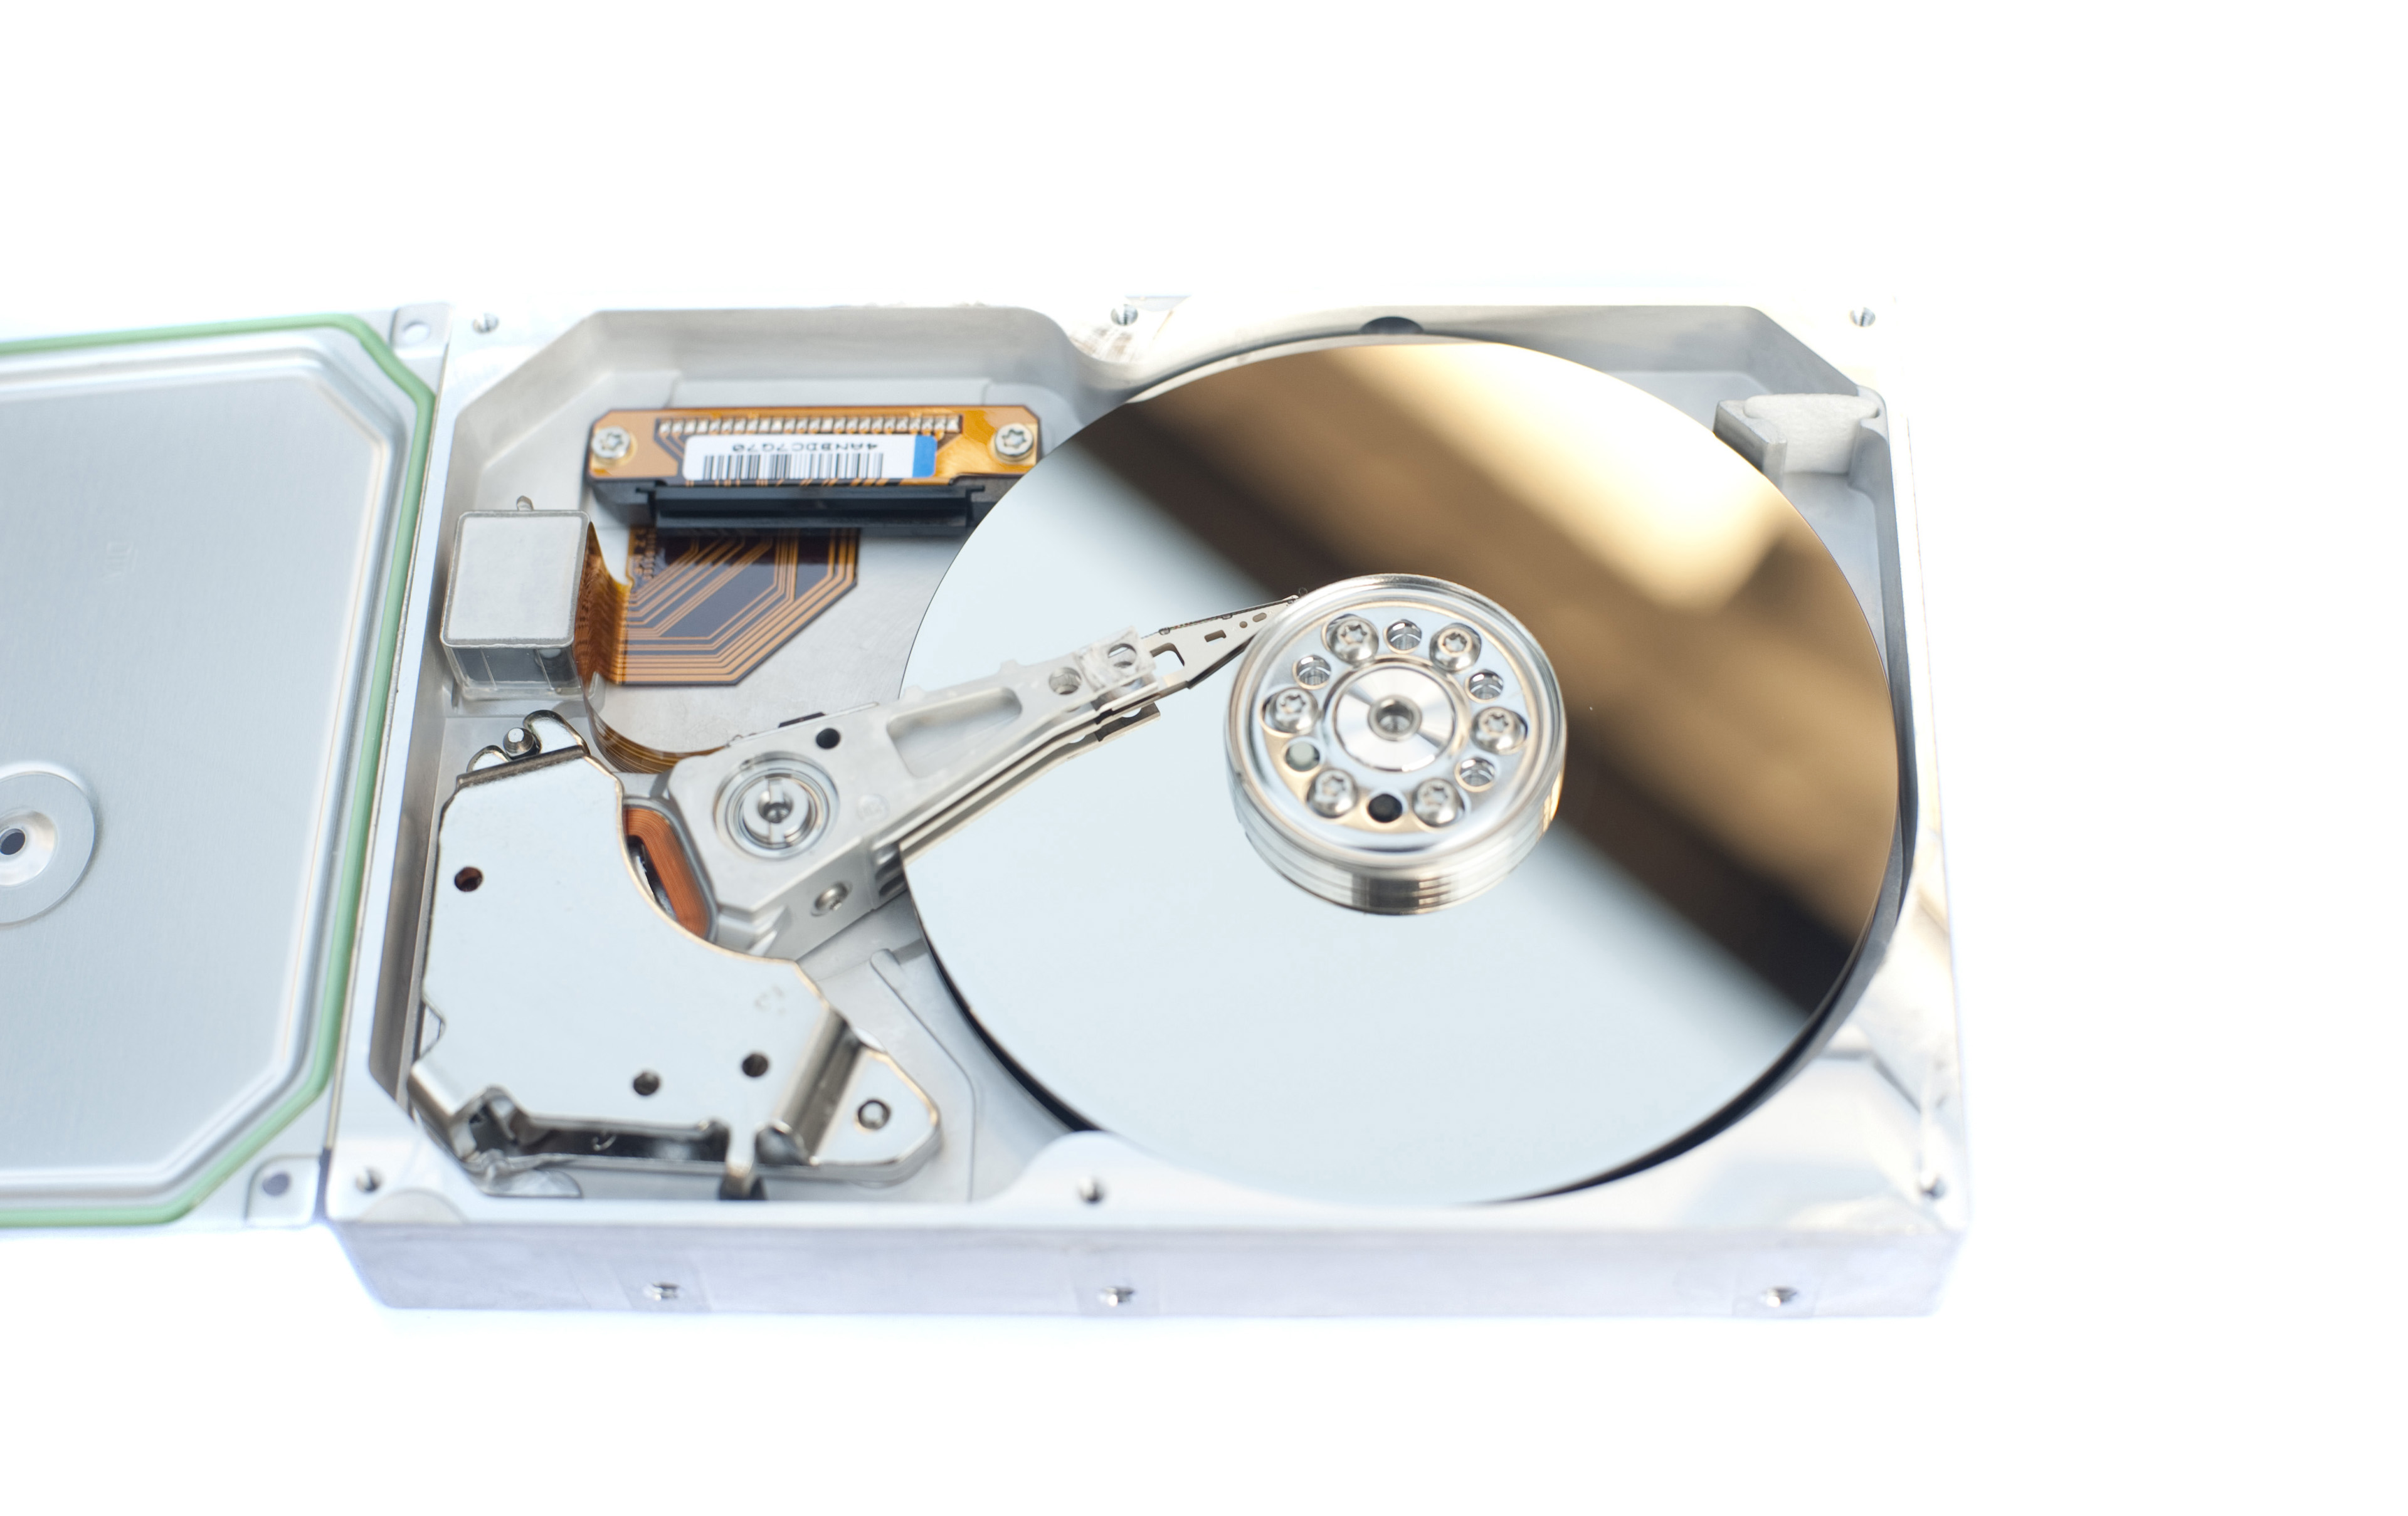 Detail of Open Hard Disk Drive Displaying Shiny Components, Open Case on White Background